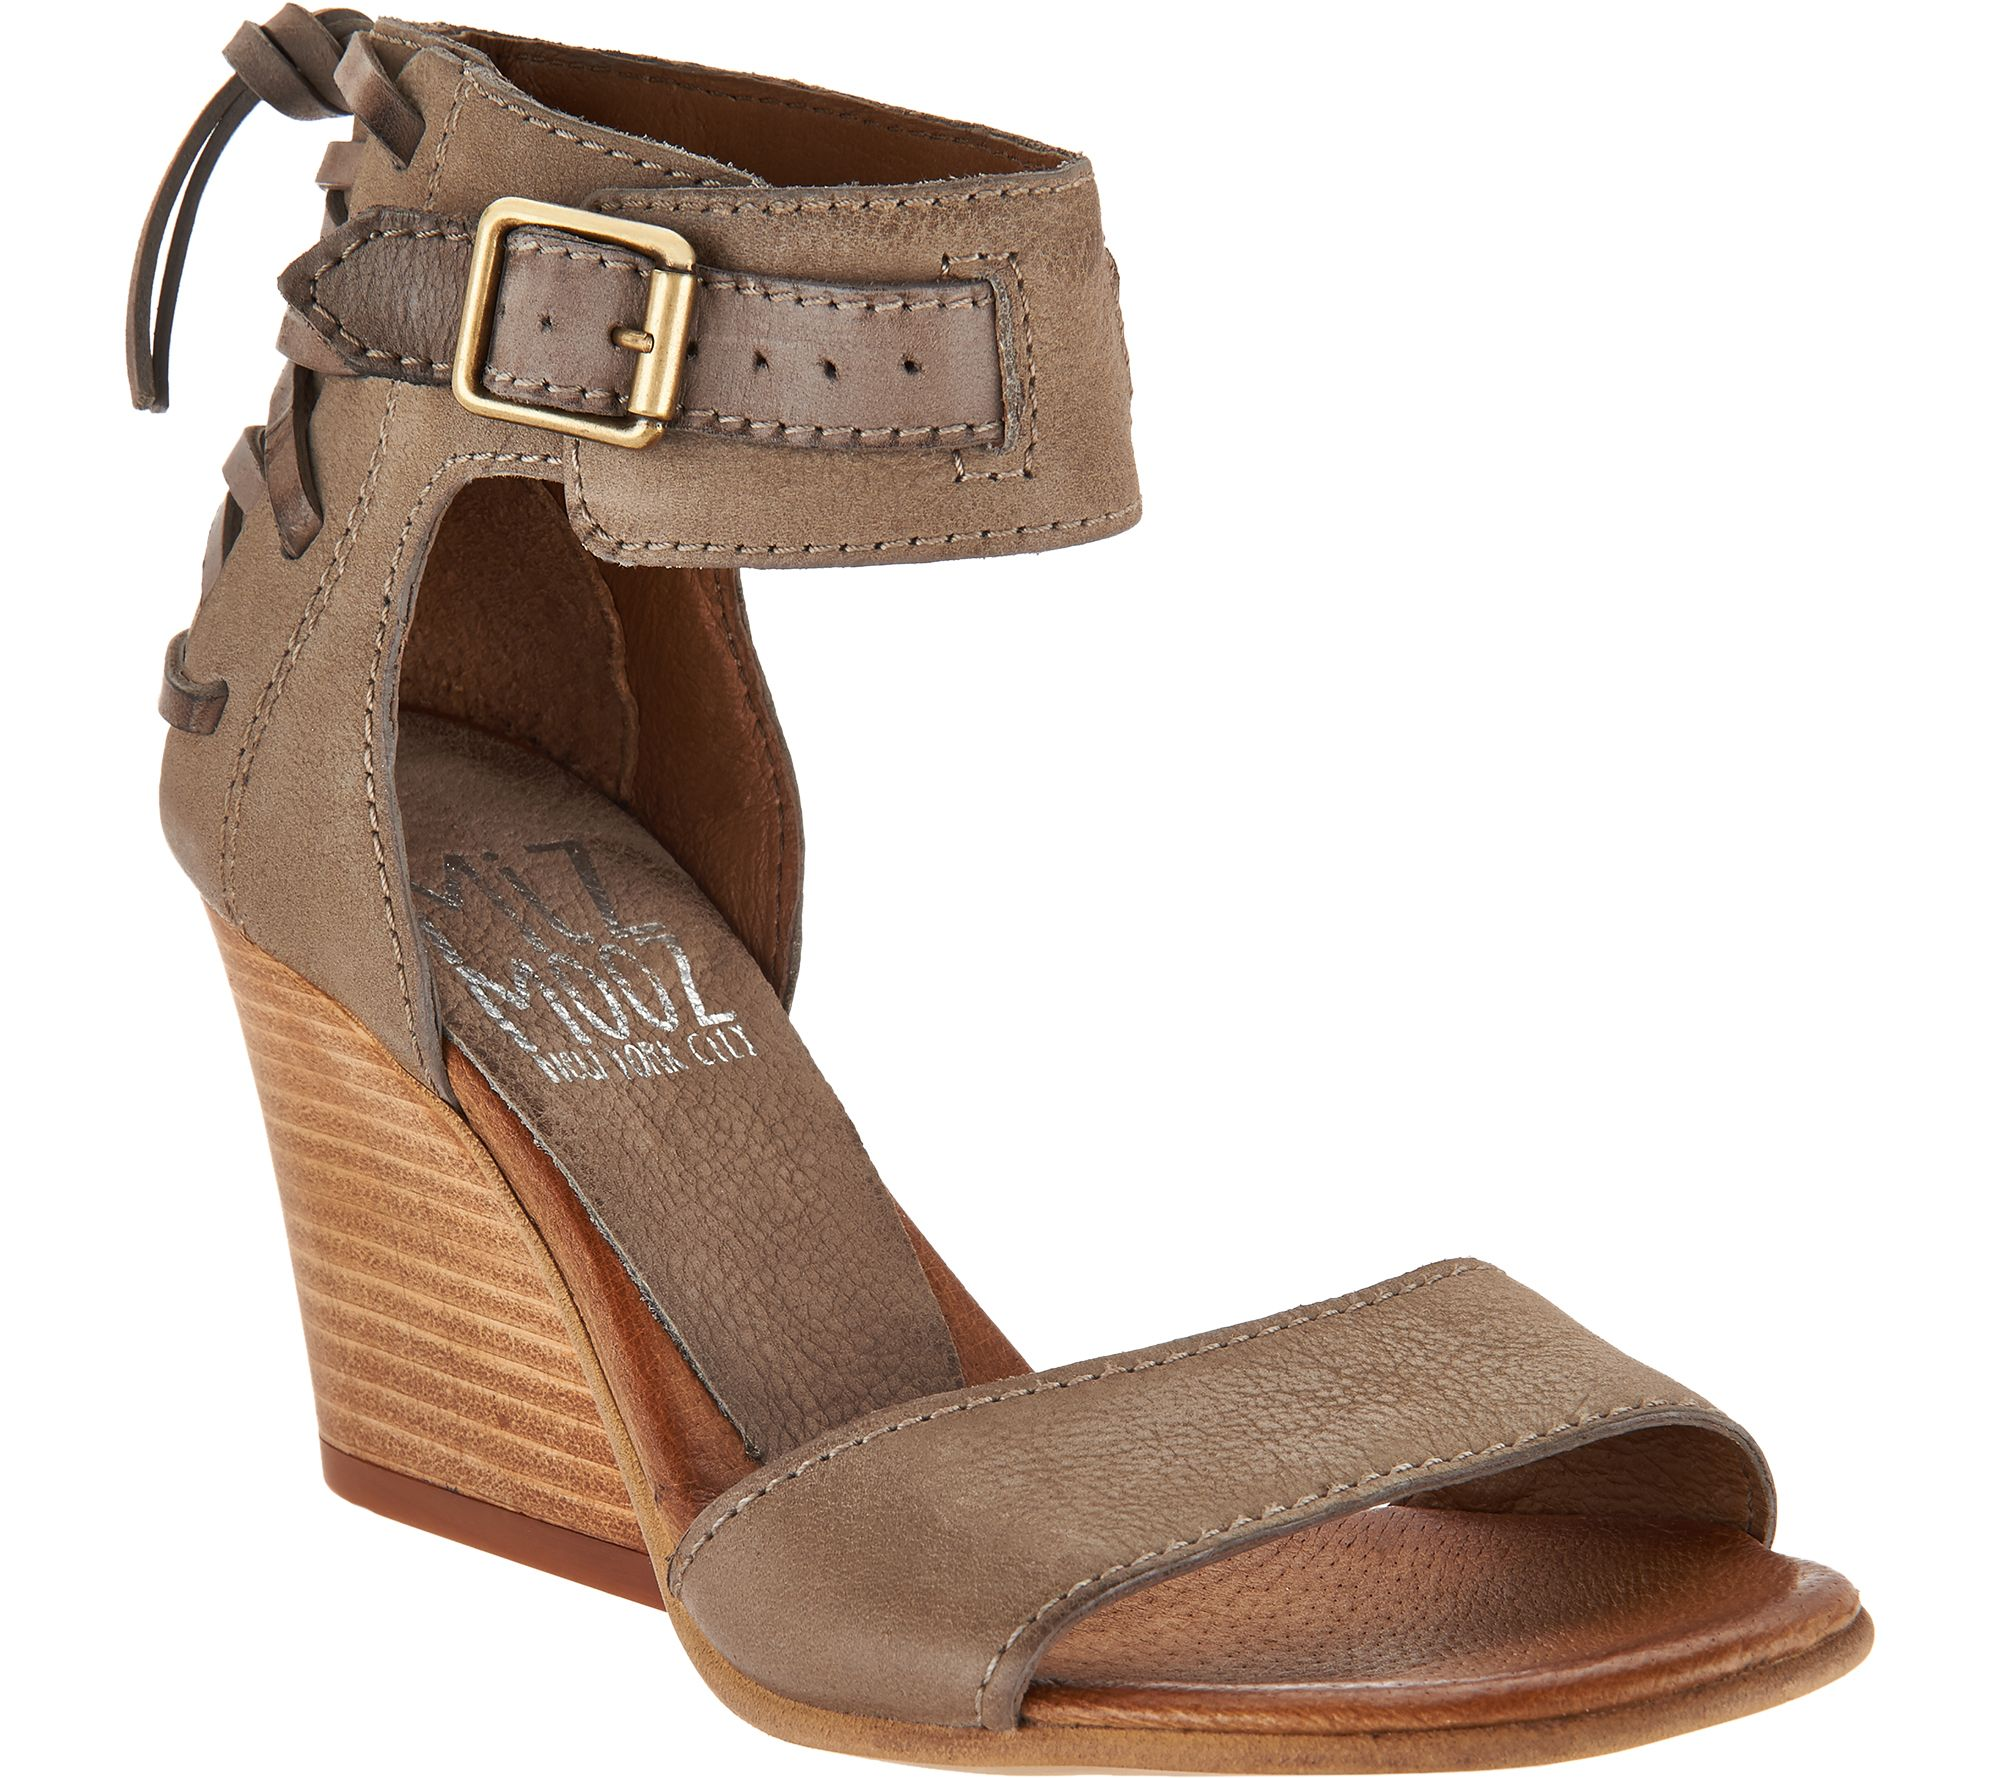 beginners over falling comfortable to pain heels how tips high most and without in walk for comforter advice fashion wedges